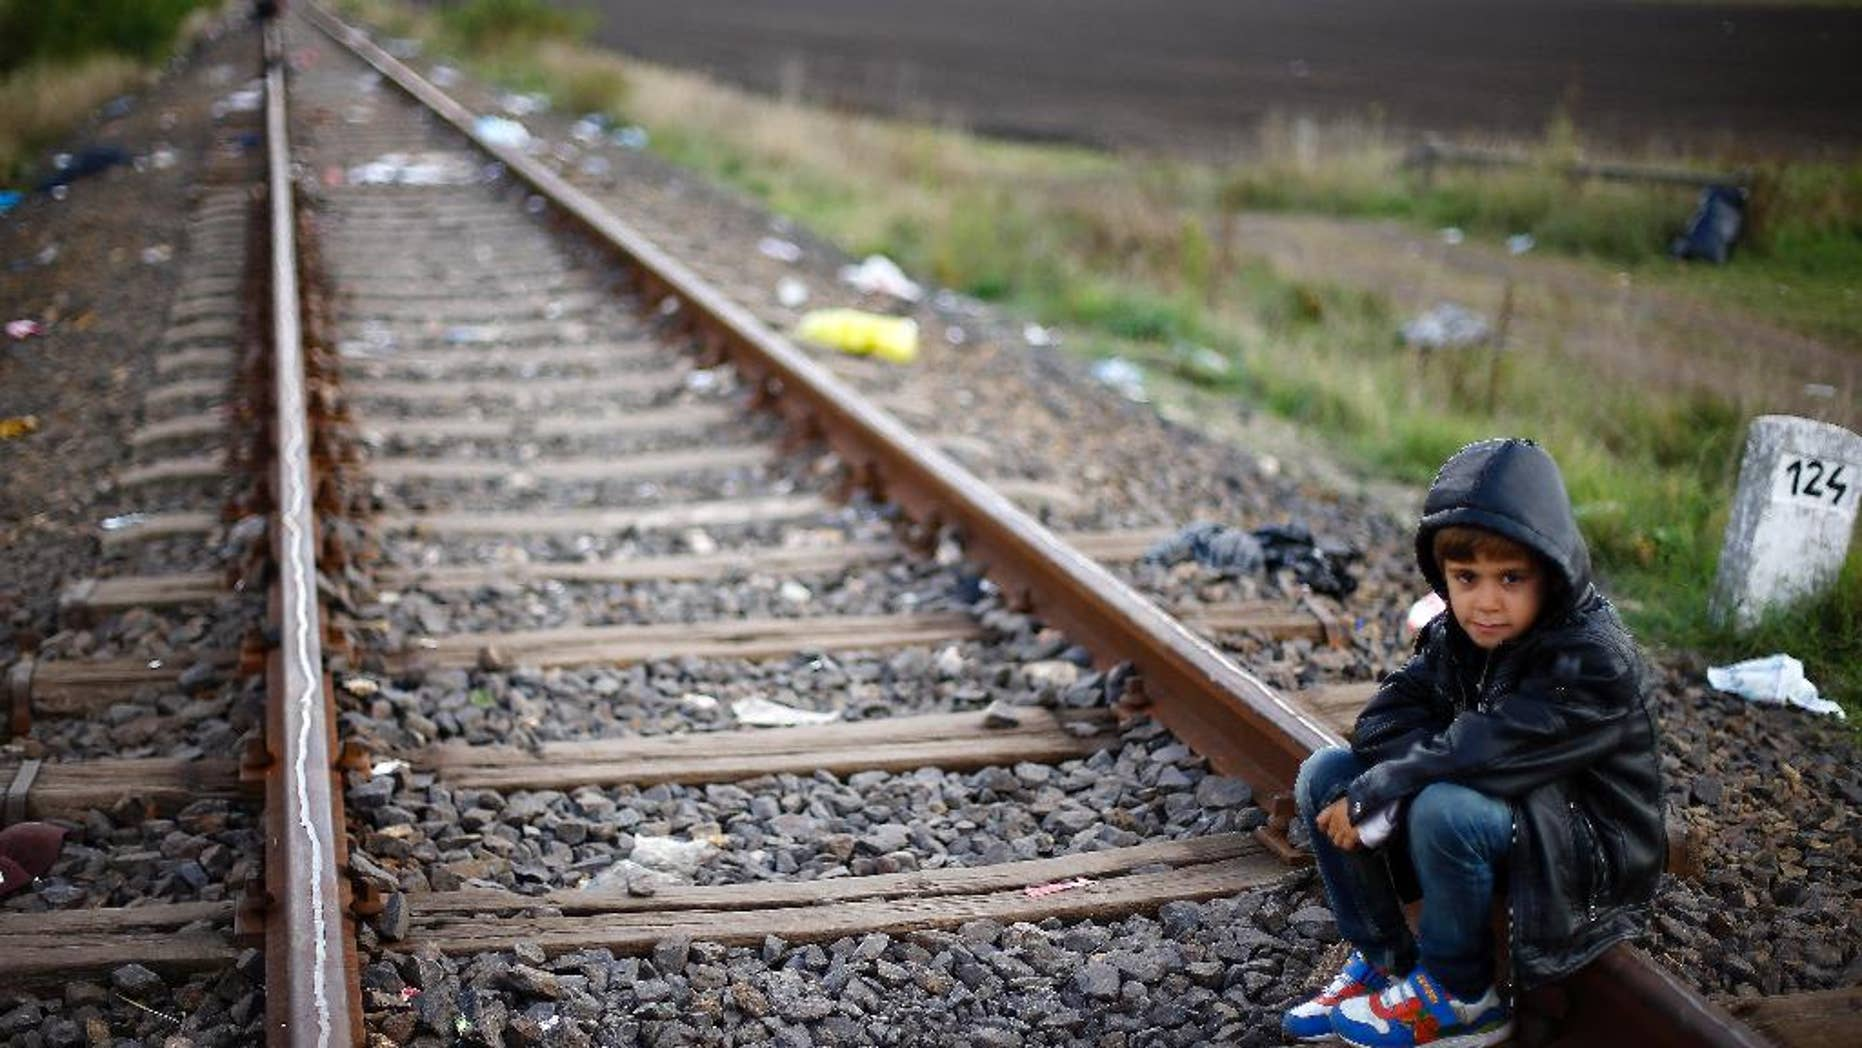 A young boy rests on the railway track near a temporary holding center for migrants near the border between Serbia and Hungary in Roszke, southern Hungary in Roszke, Saturday, Sept. 12, 2015. Leaders of the United Nations refugee agency warned Tuesday that Hungary faces a bigger wave of 42,000 asylum seekers in the next 10 days and will need international help to provide shelter on its border. (AP Photo/Matthias Schrader)